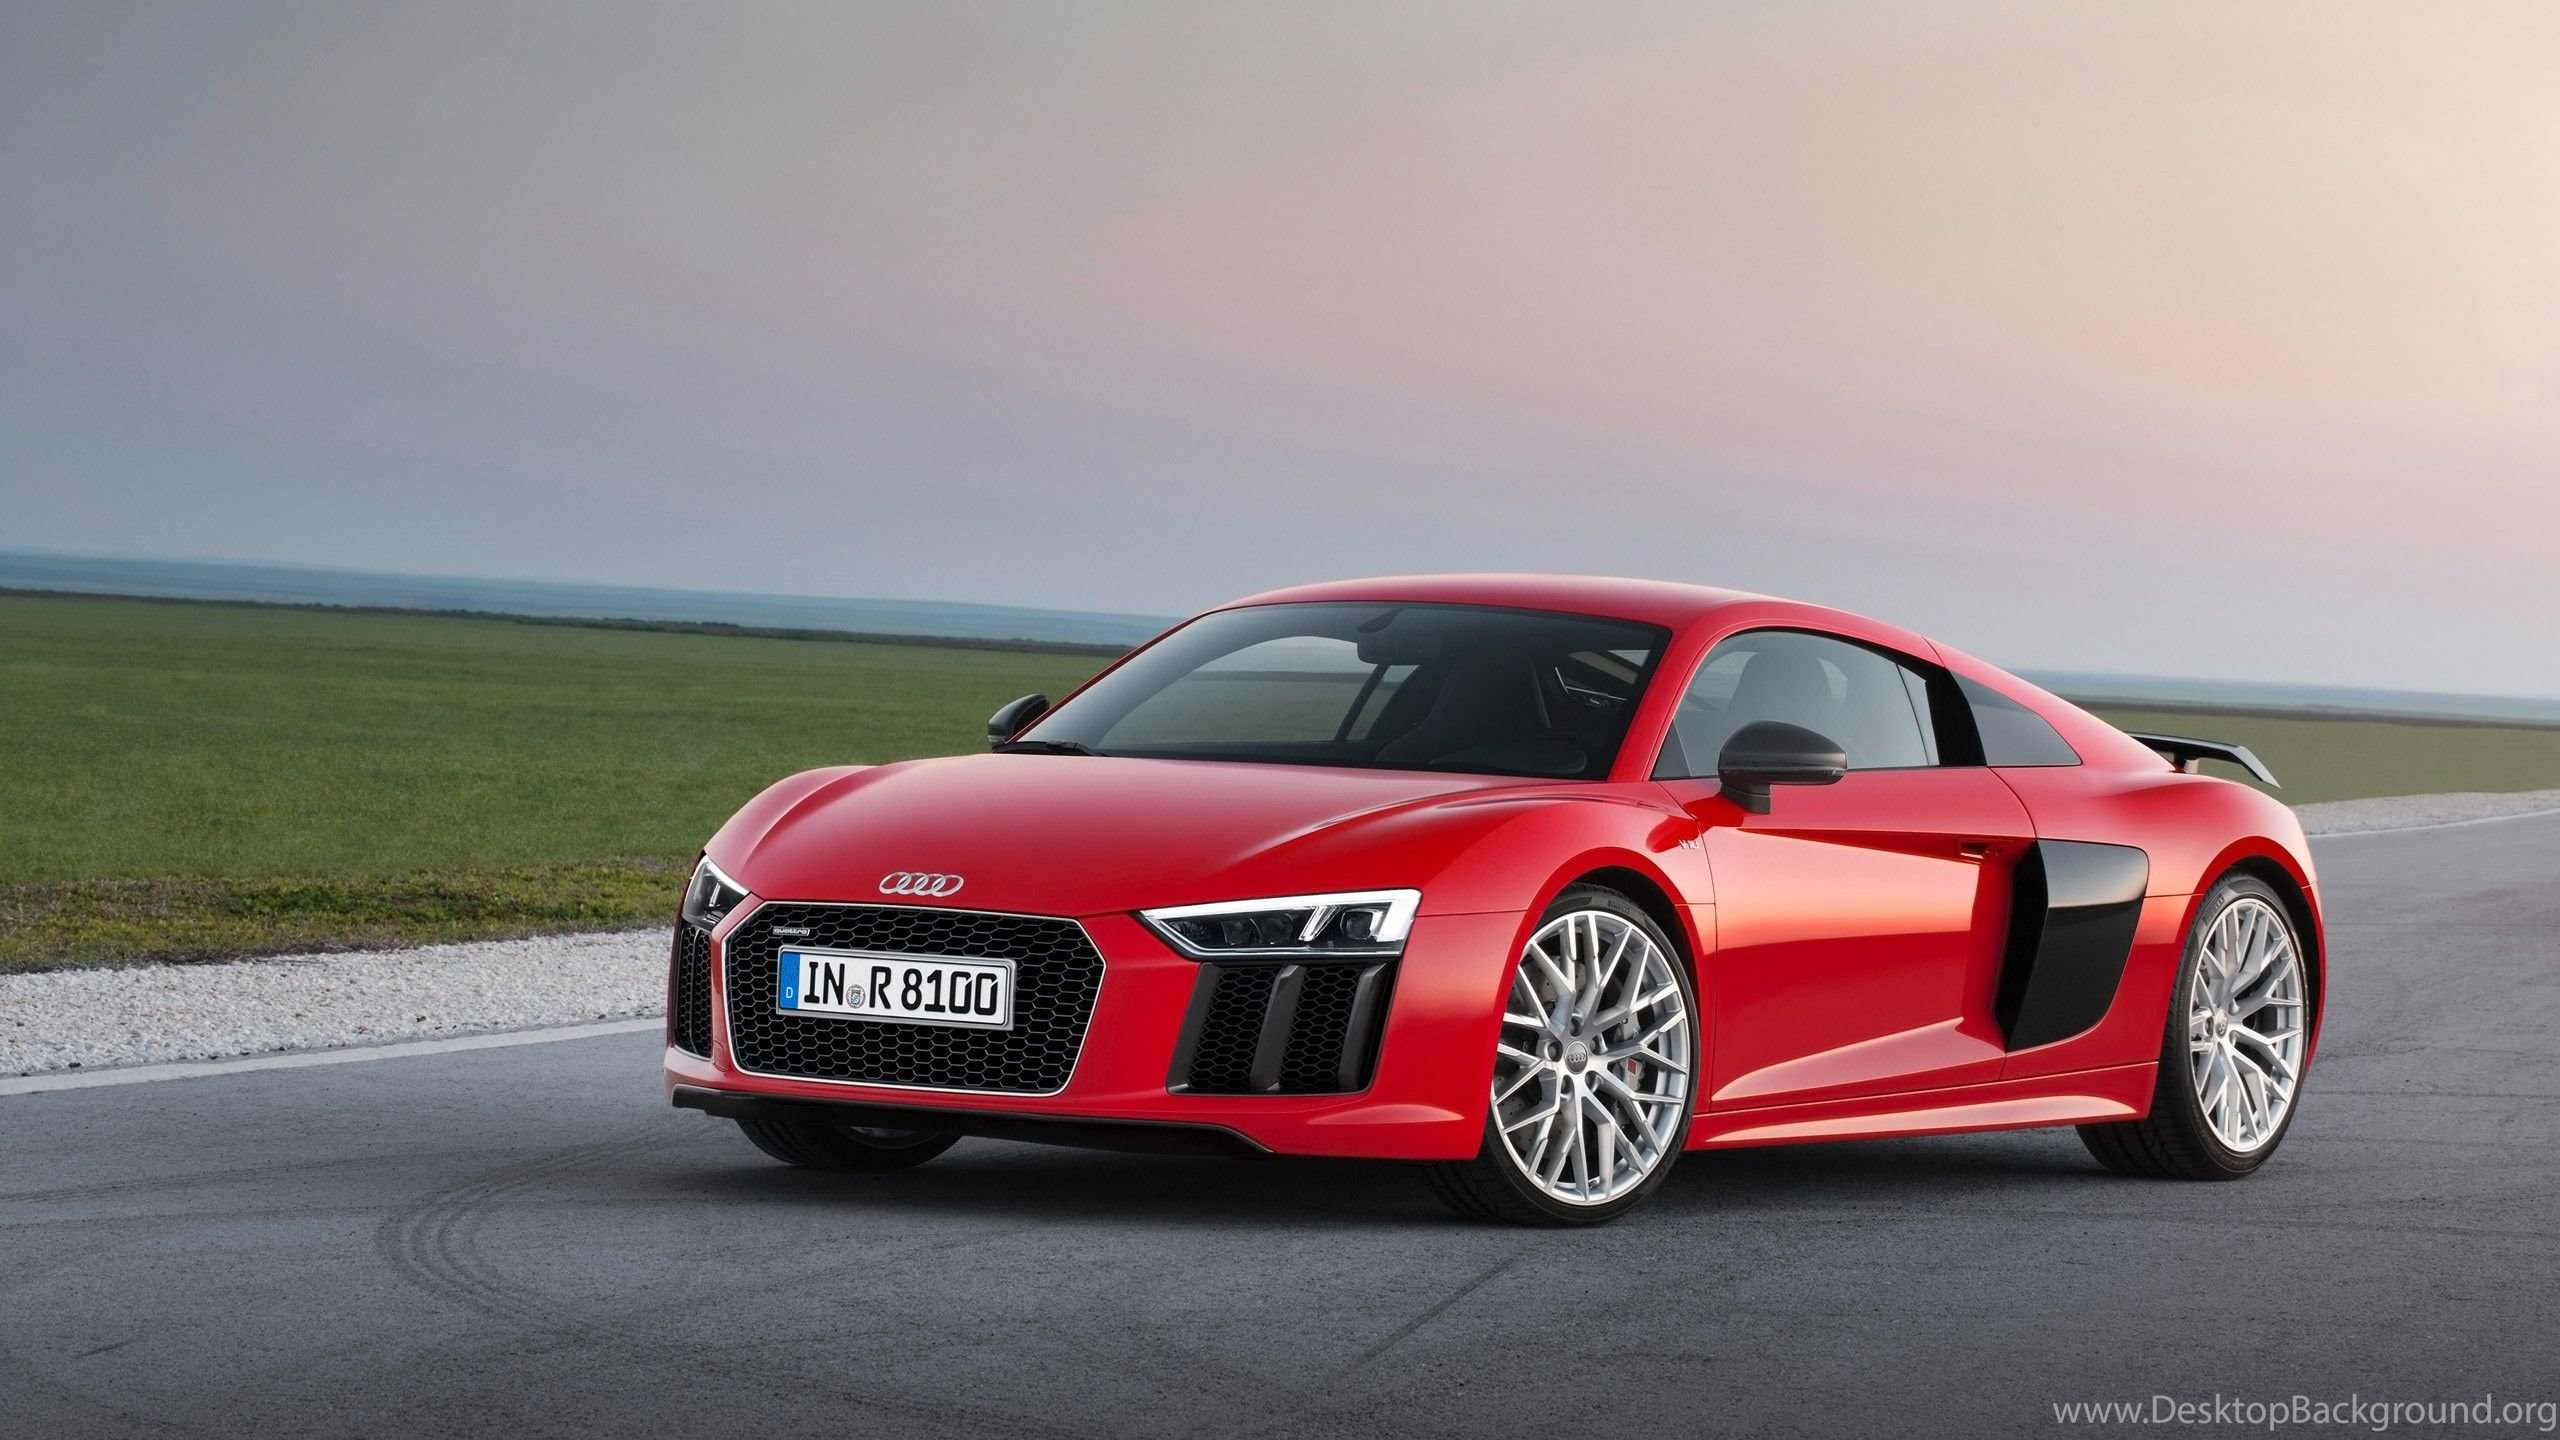 pictures of an audi r8 wallpapers free hd wallpaper backgrounds view